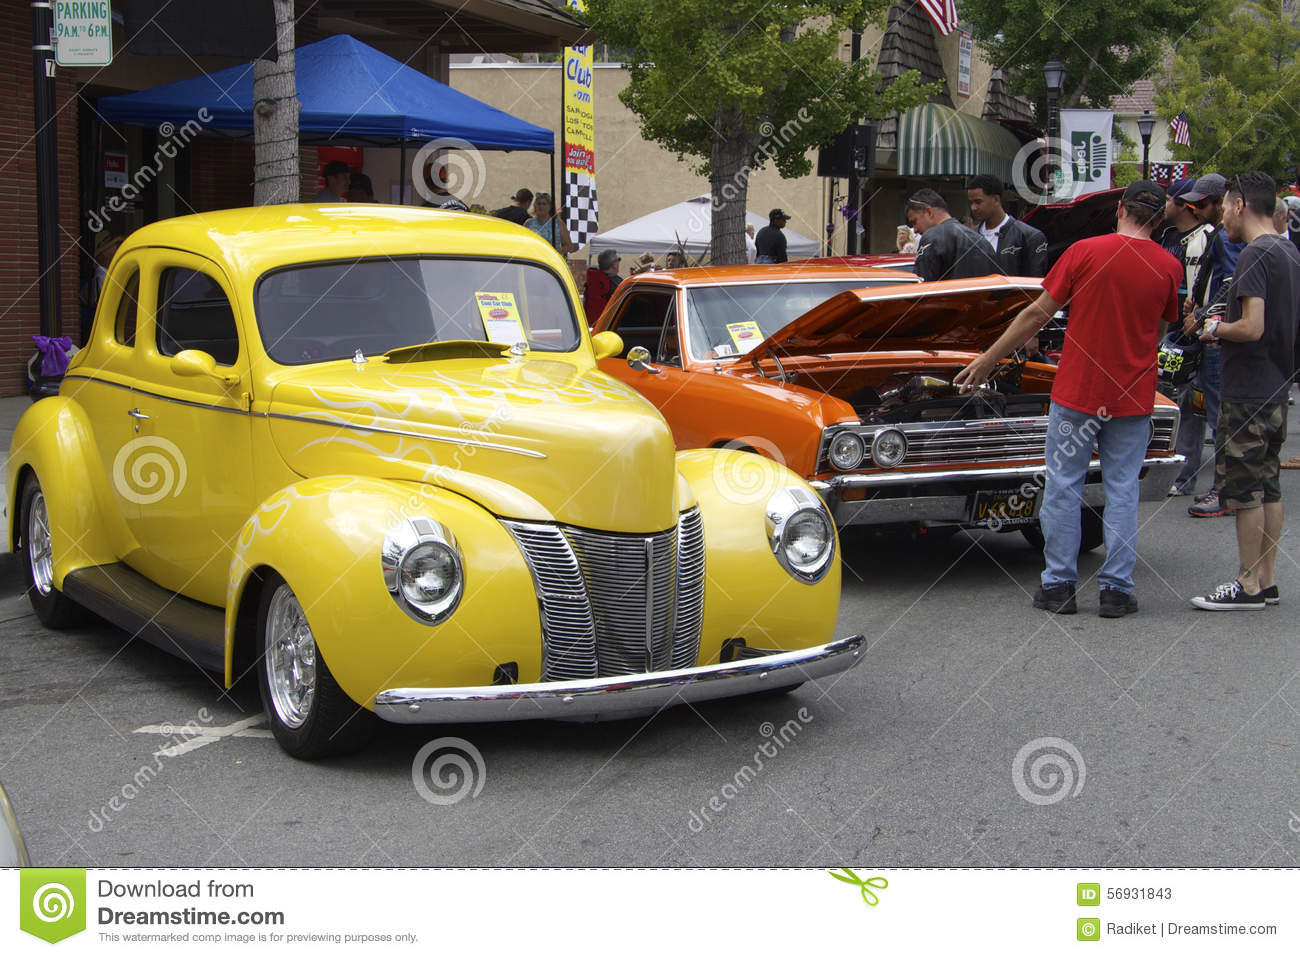 hight resolution of yellow ford 1940 and red chevrolet el camino 1967 the photo was taken at the sixth annual exhibition of classic vintage car in saratoga silicon valley